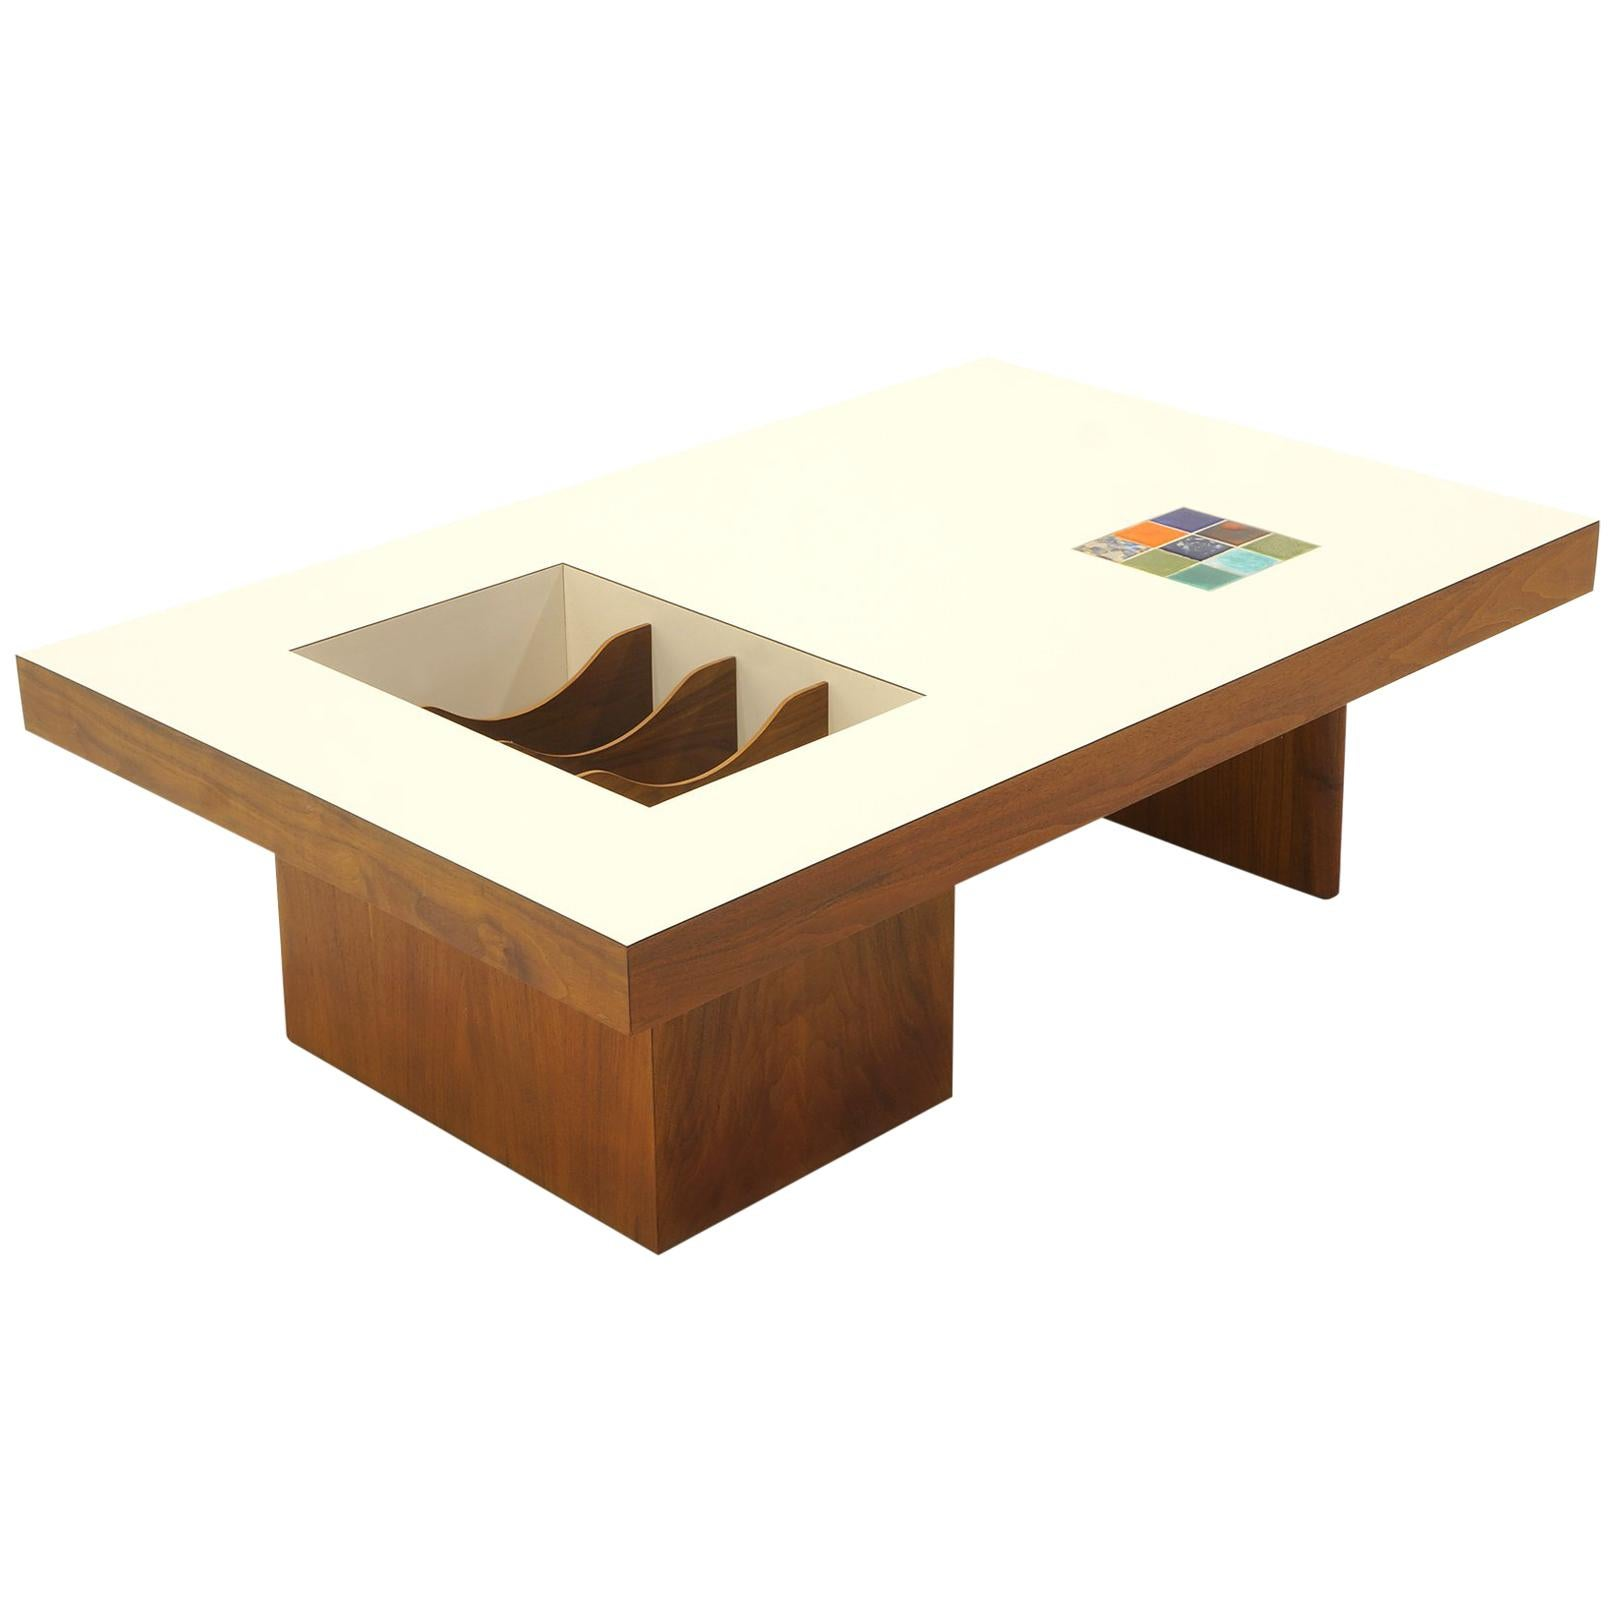 Danish Modern Coffee Table With Built In Magazine / Album Storage, Tile  Inlay